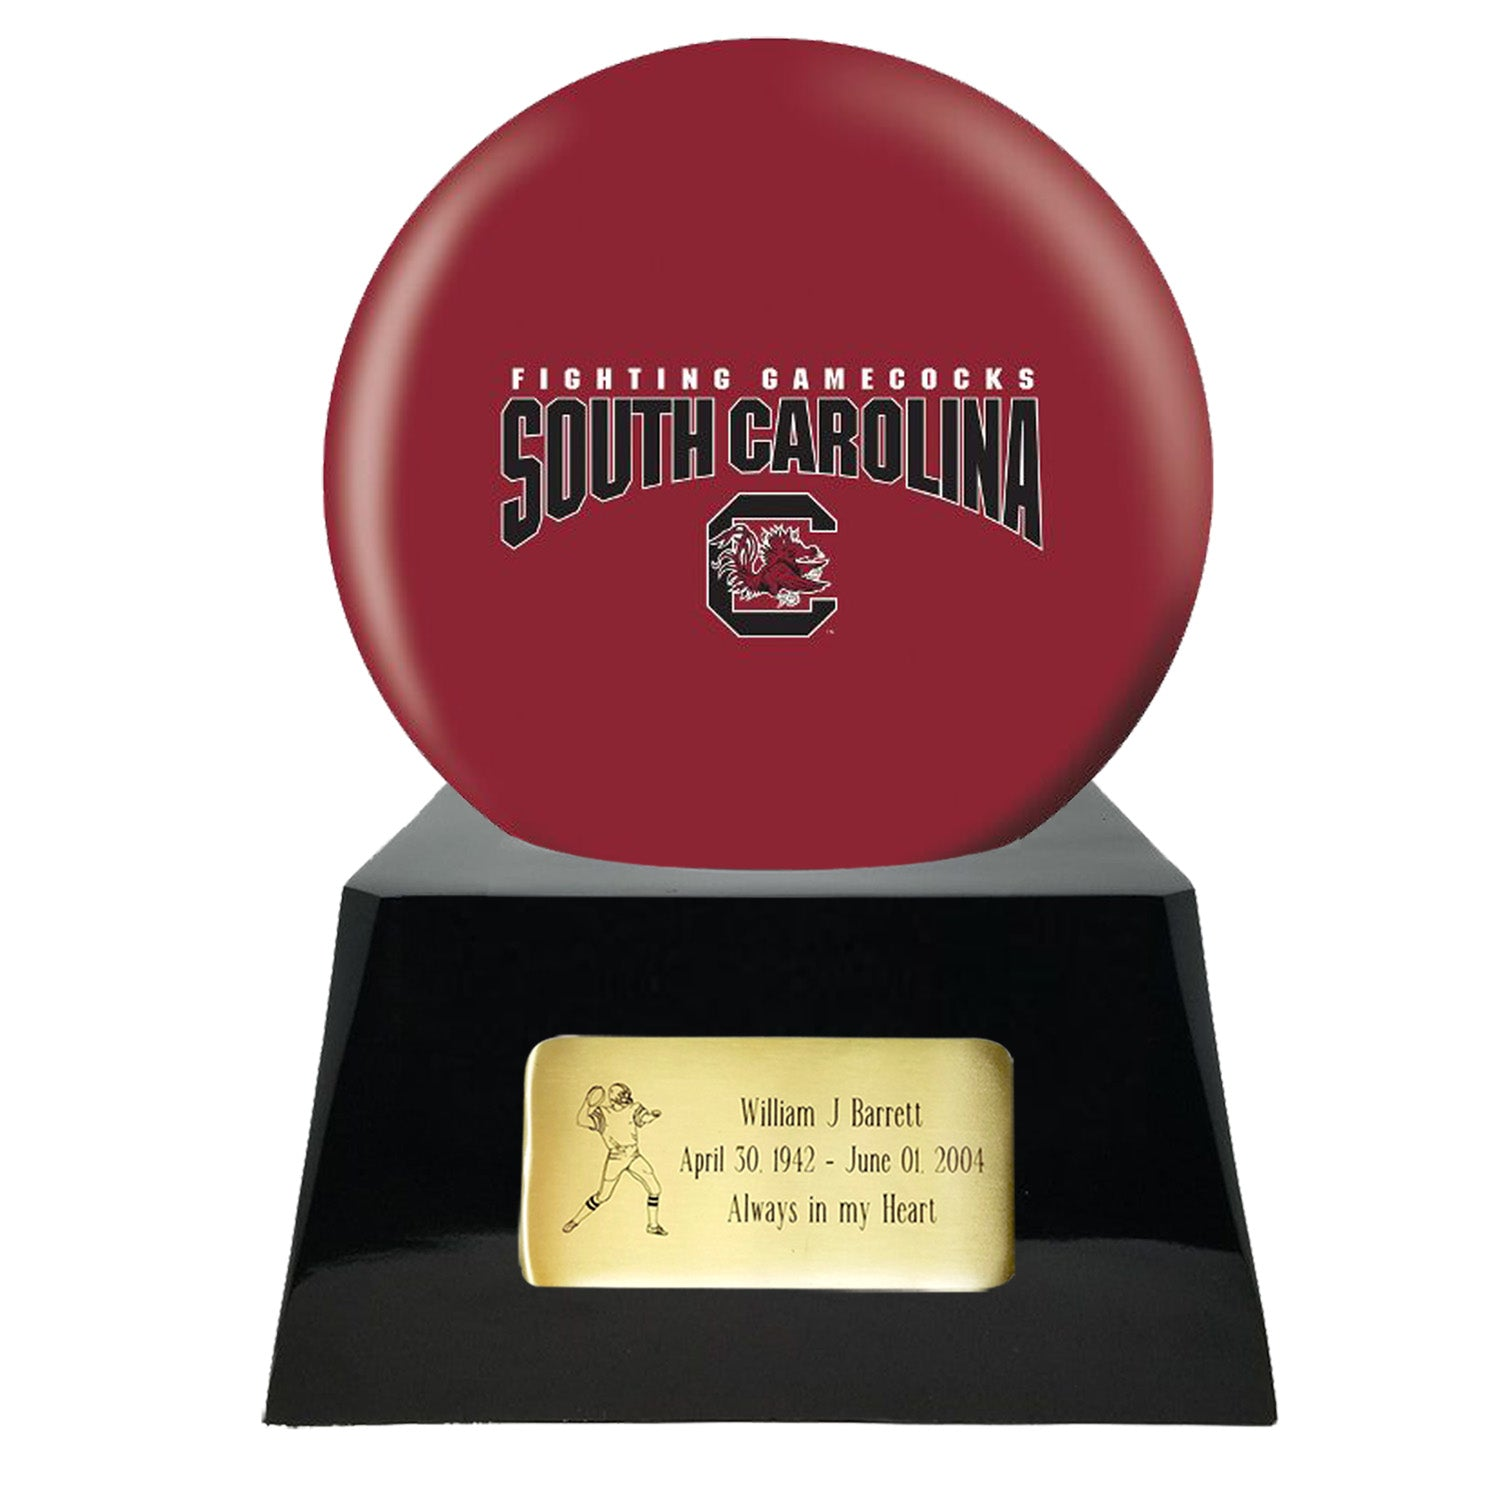 Football Urn - South Carolina Gamecocks Ball Decor with Custom Metal Plaque Football Cremation Urn for Human Ashes - NFL URN - Memorials4u